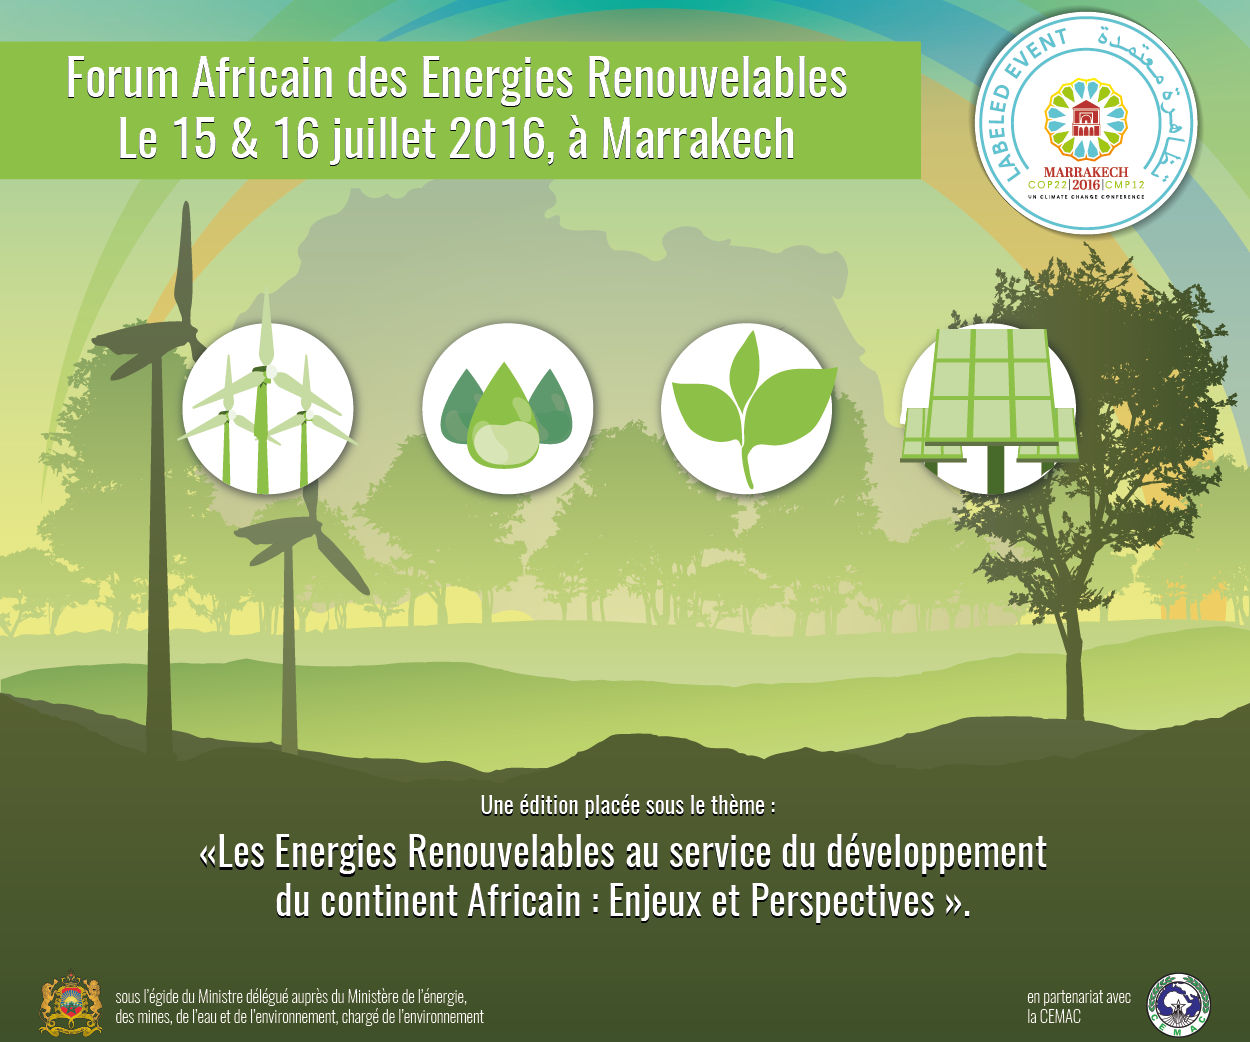 AFER Forum 2016 African Forum of Renewable Energies